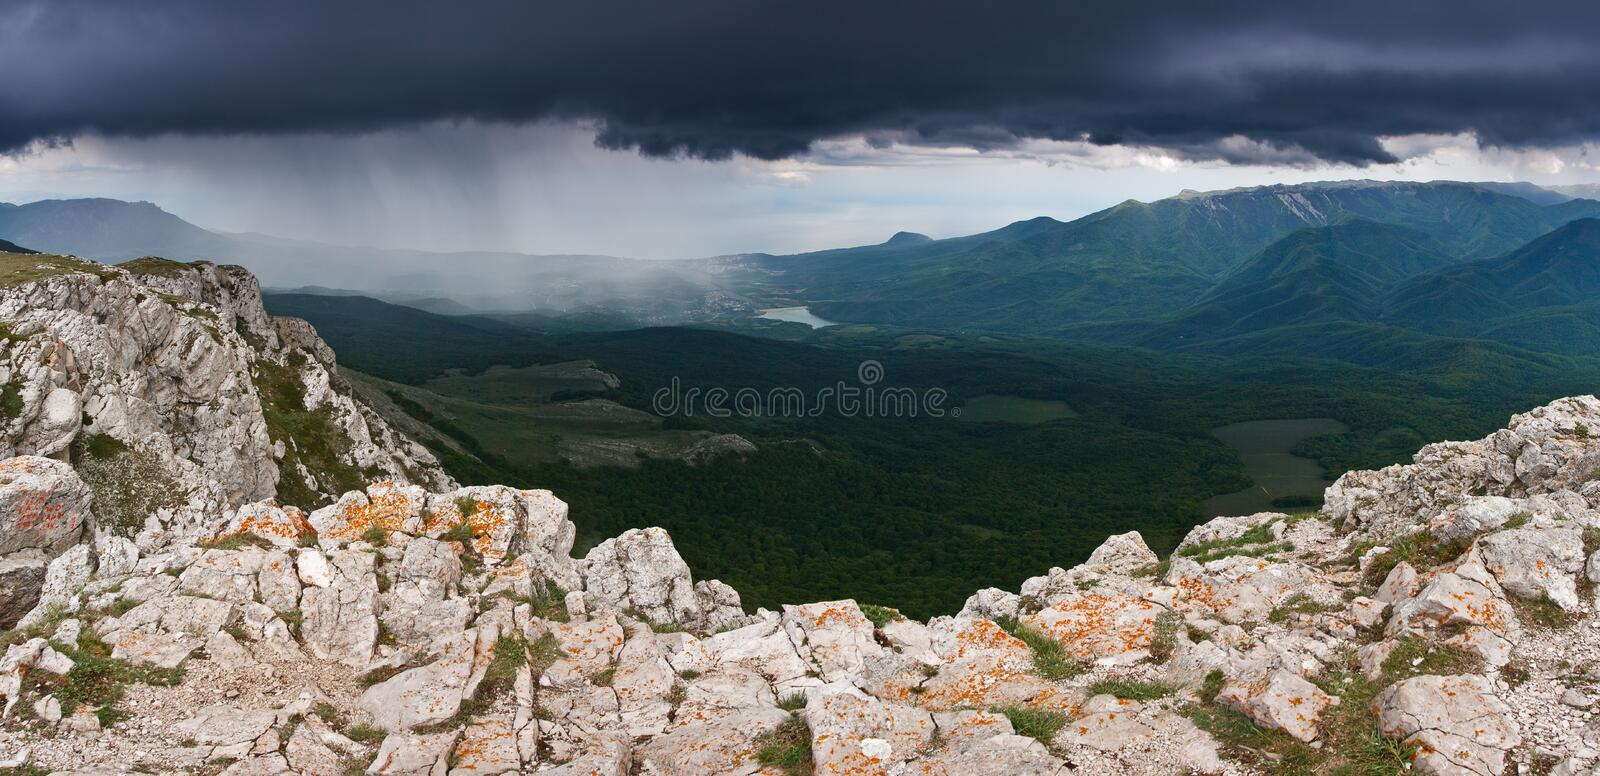 Rain clouds. Landscape with mountains and storm clouds stock images